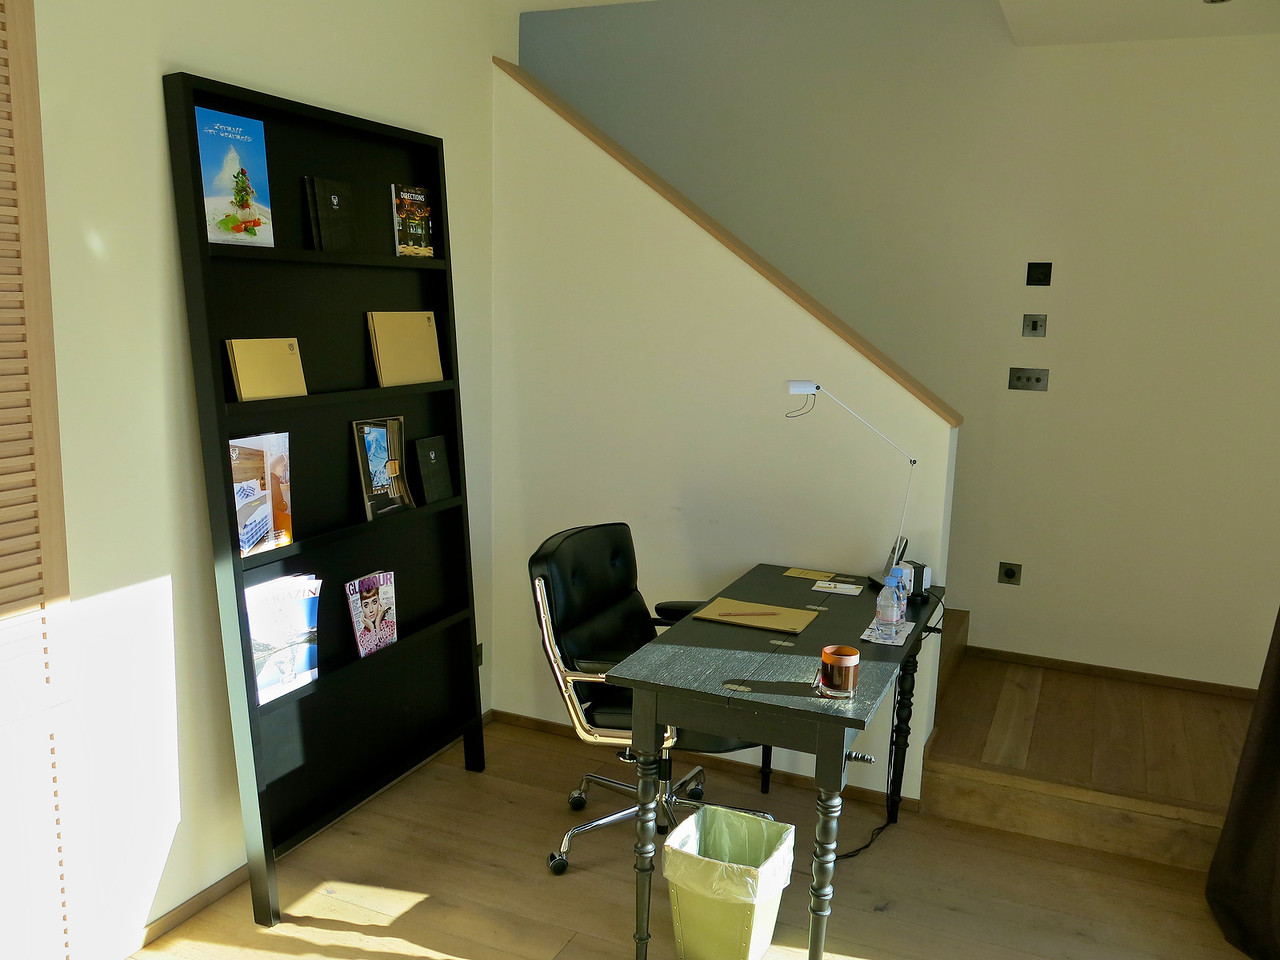 Around the corner from the kitchen is a small office area with desk and chair.